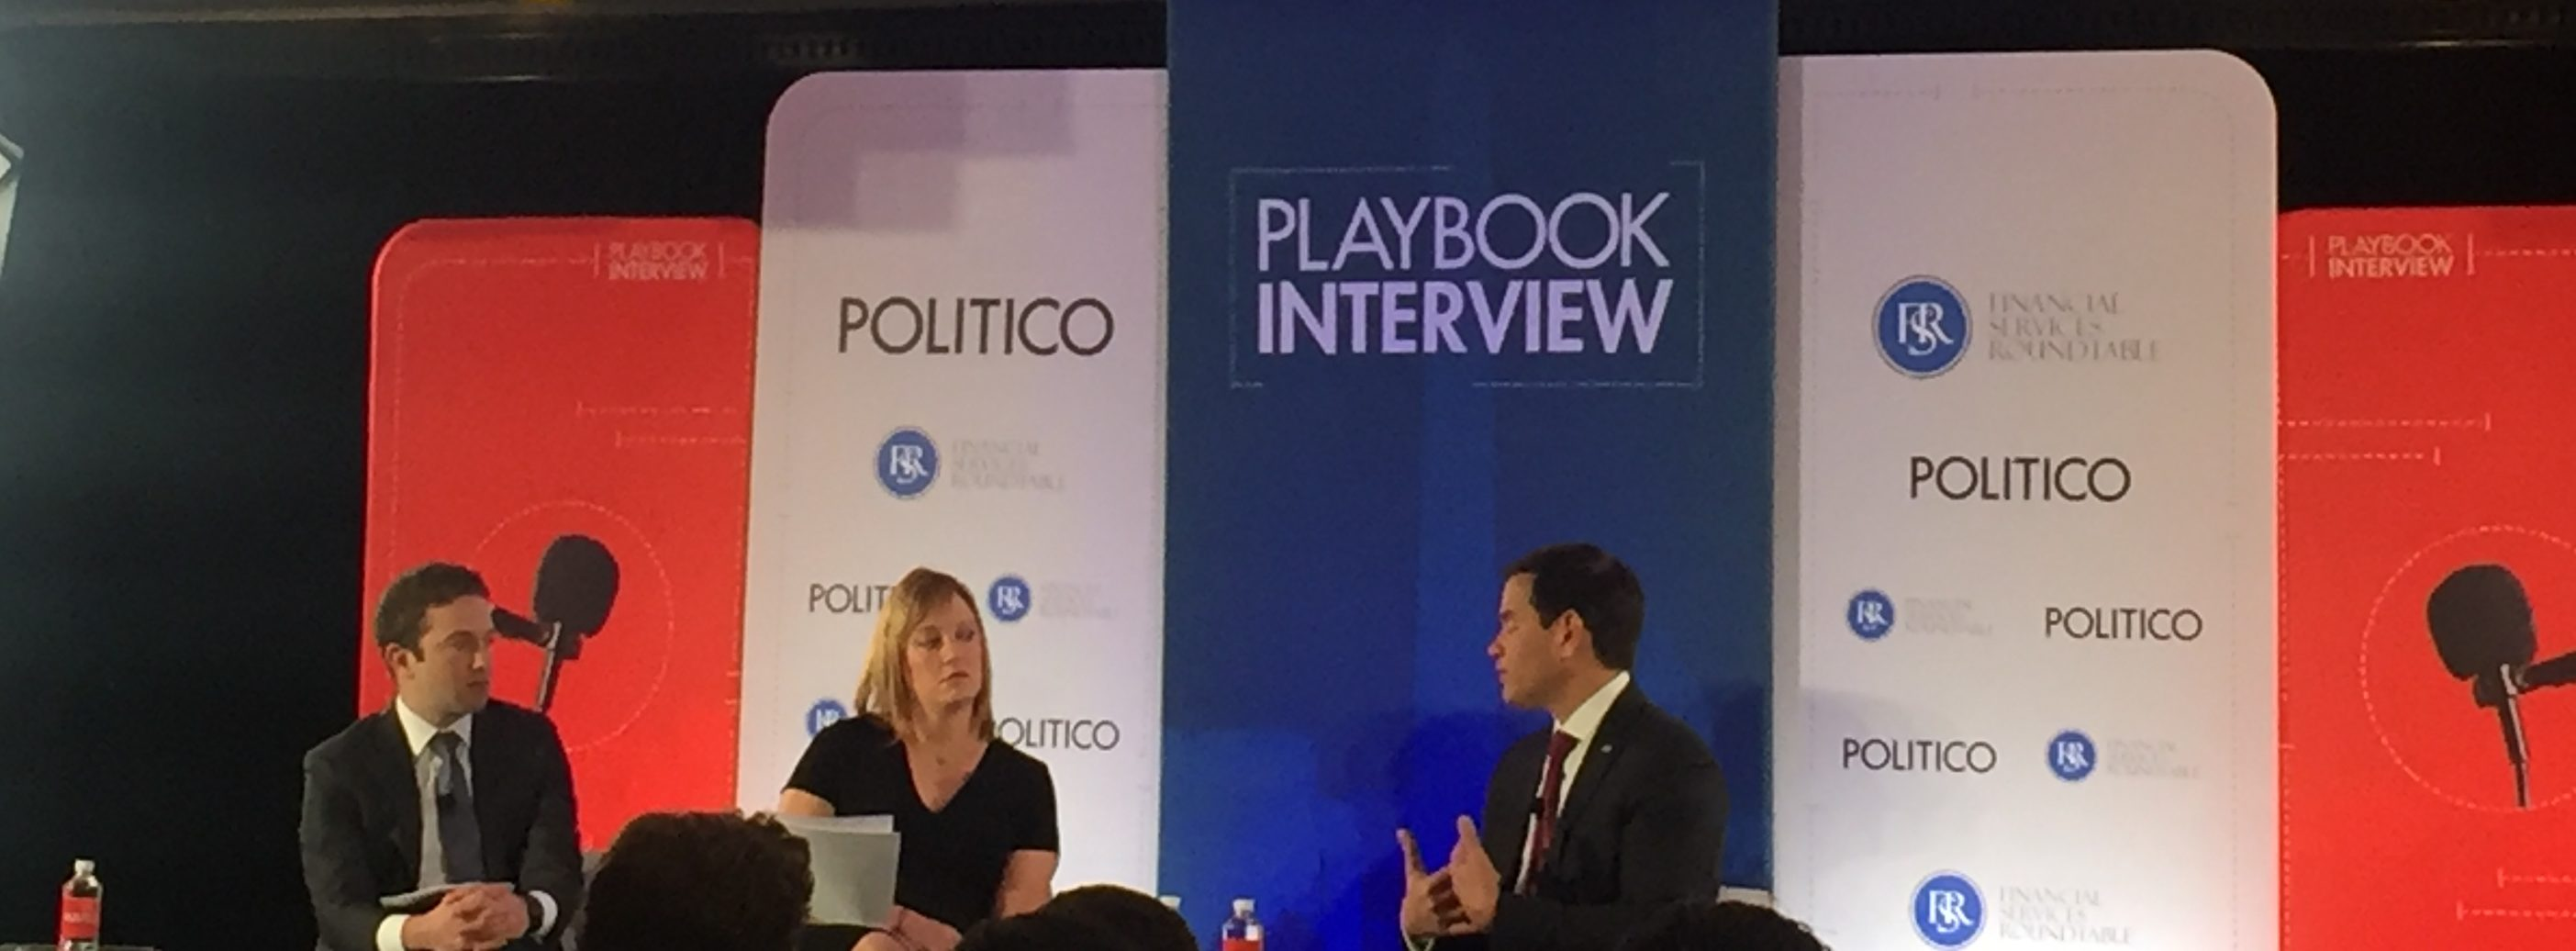 Jack Crowe DCNF/Playbook Rubio interview